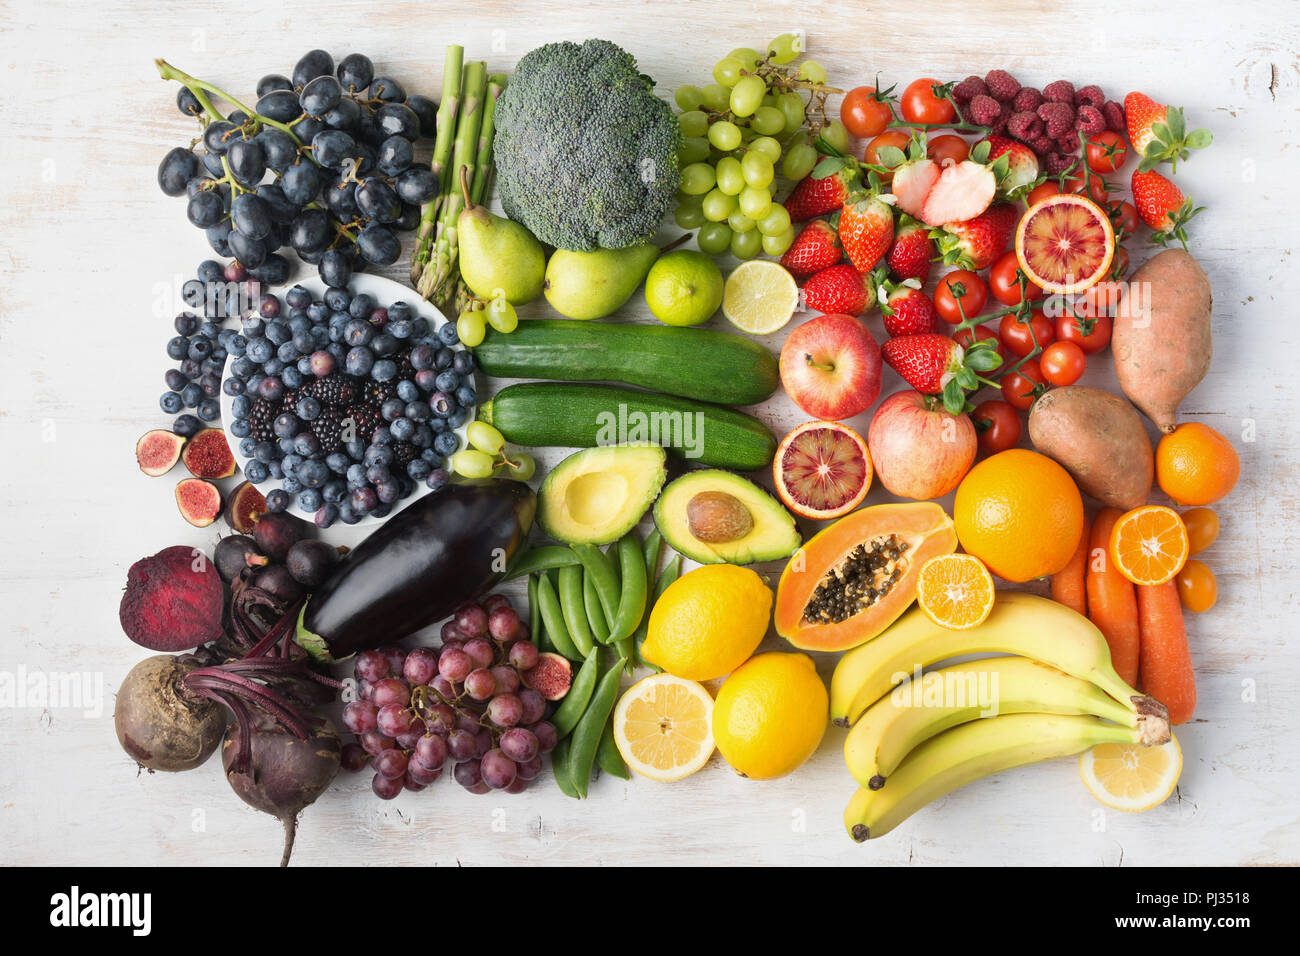 Concept de saine alimentation, assortiment de fruits et légumes, arc-en-ciel petits fruits, bananes, oranges, raisins, brocoli, betterave sur l'off white table dans un rectangle, vue du dessus, selective focus Banque D'Images